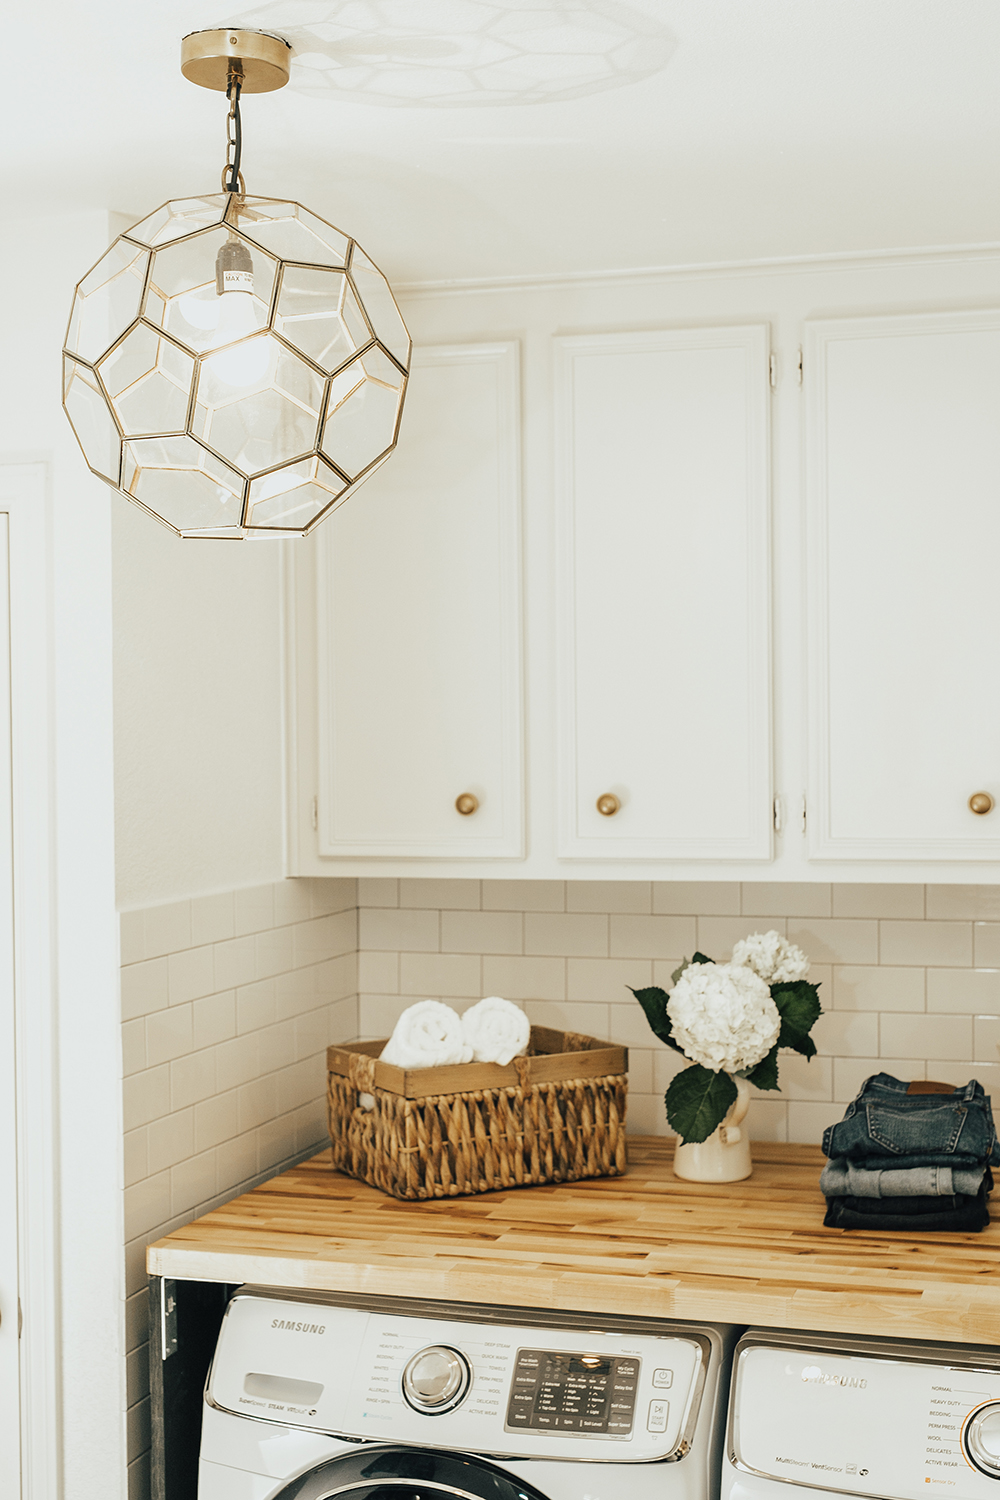 livvyland-blog-olivia-watson-home-decor-interior-design-before-after-laundry-room-makeover-renovation-update-6